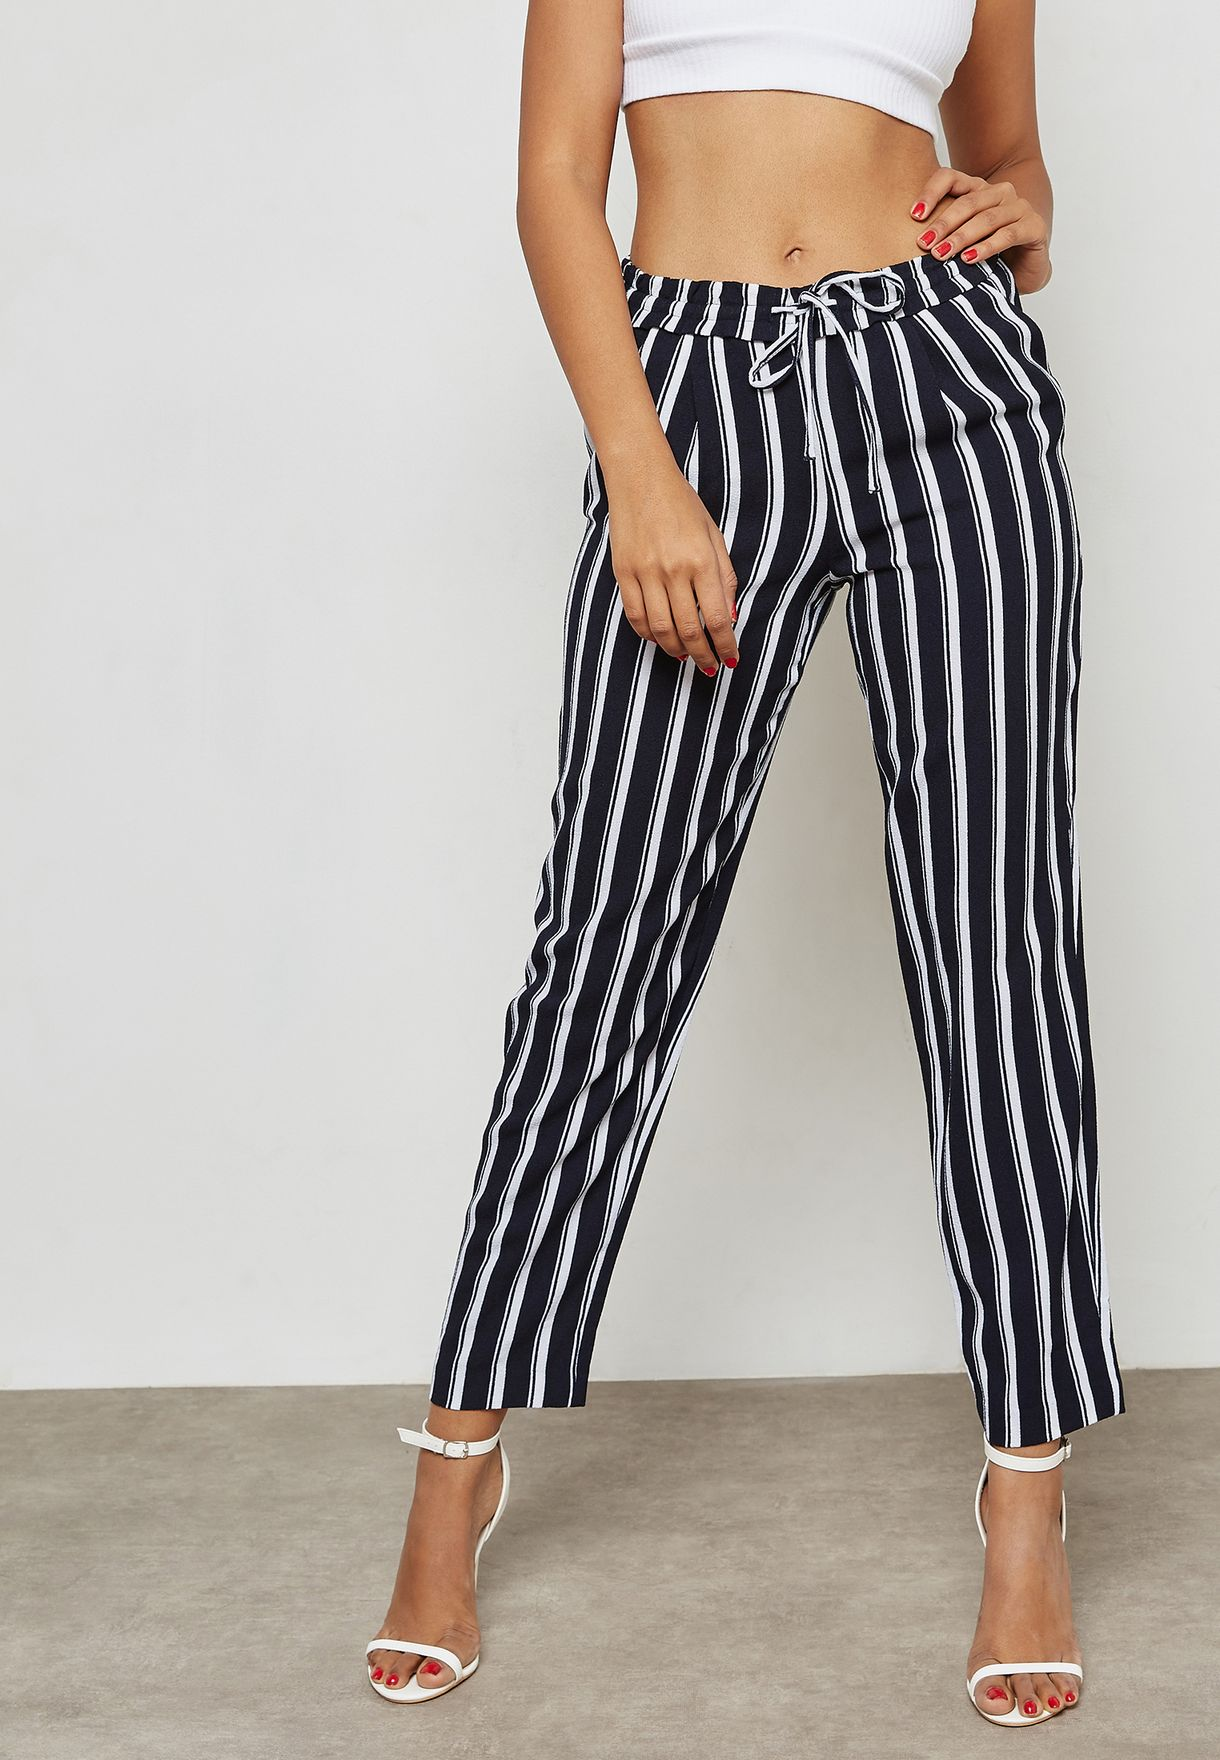 0b251974c7 Shop Only stripes Tie Waist Striped Pants 15149673 for Women in ...